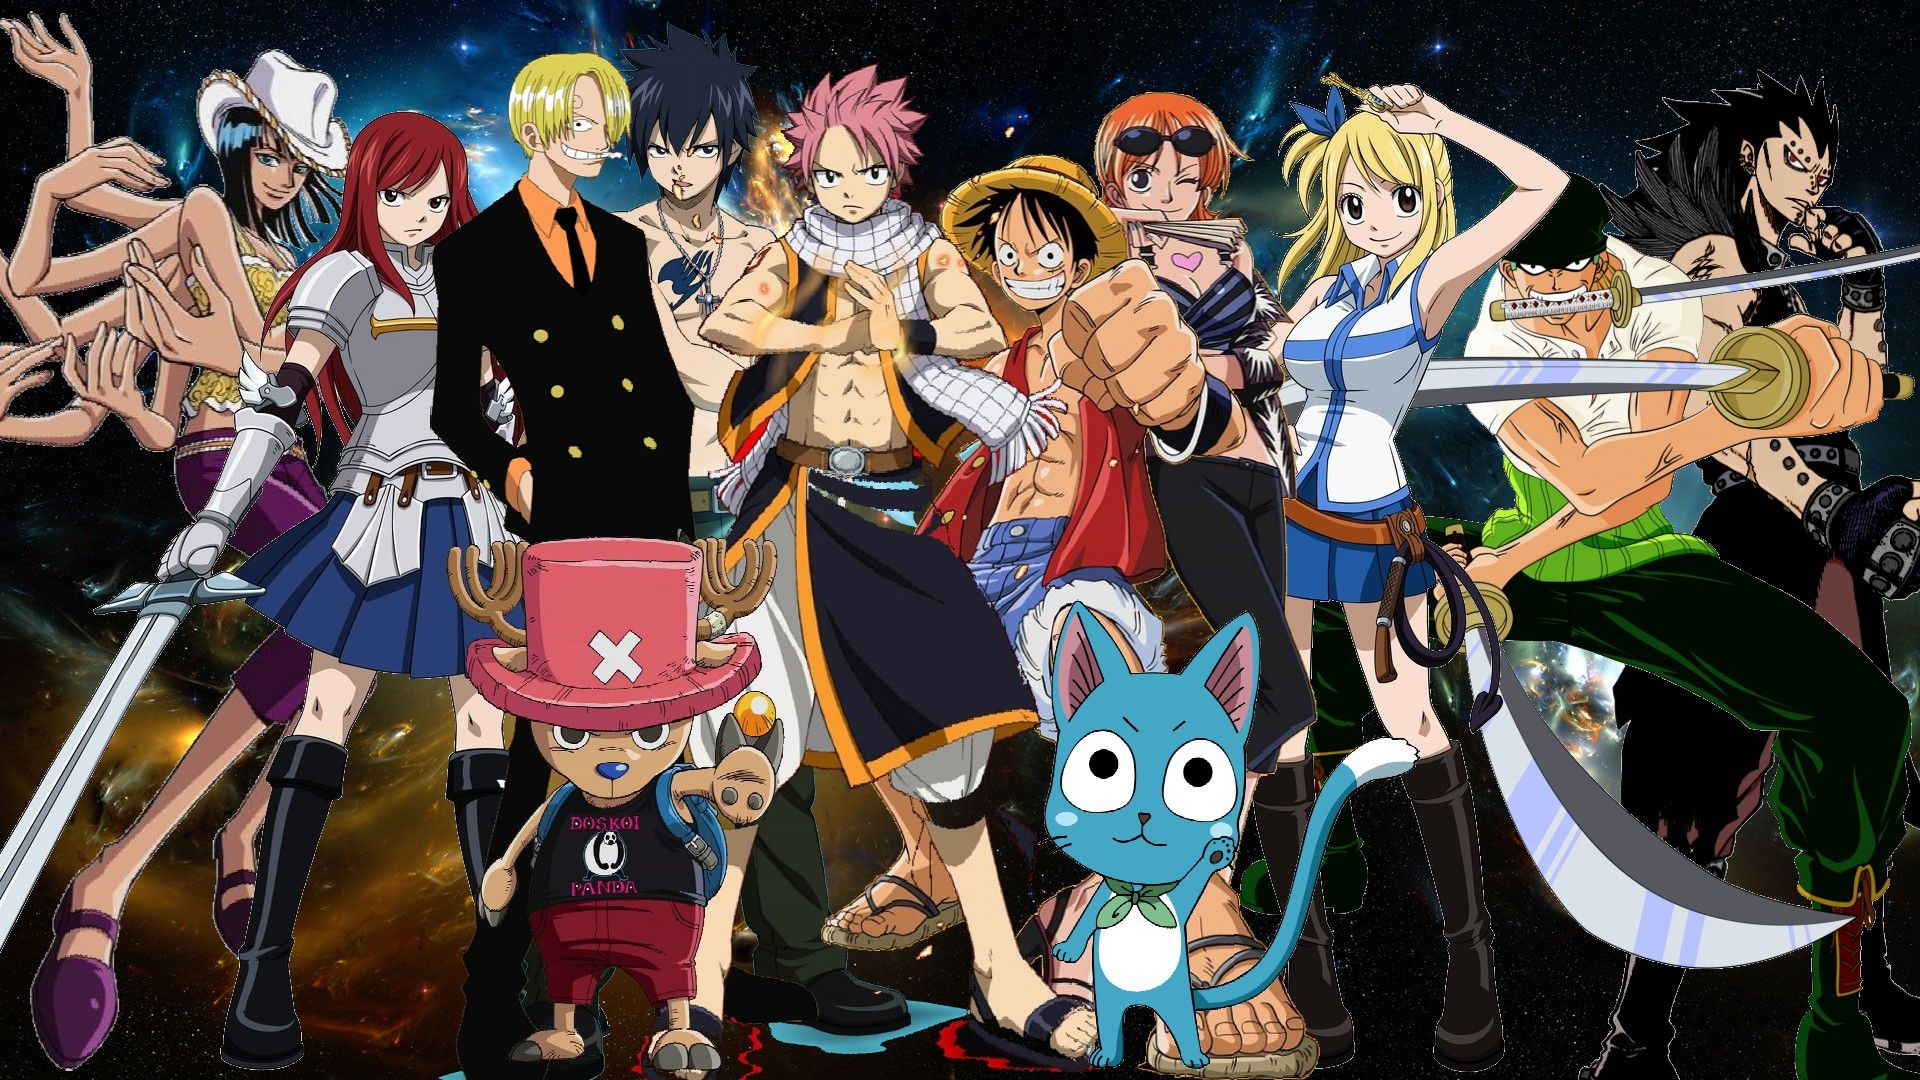 He Wanted To See A Fight Between Natsu From Fairy Tail And Luffy One Piece Description Deviantart I Searched For This On Bing Images